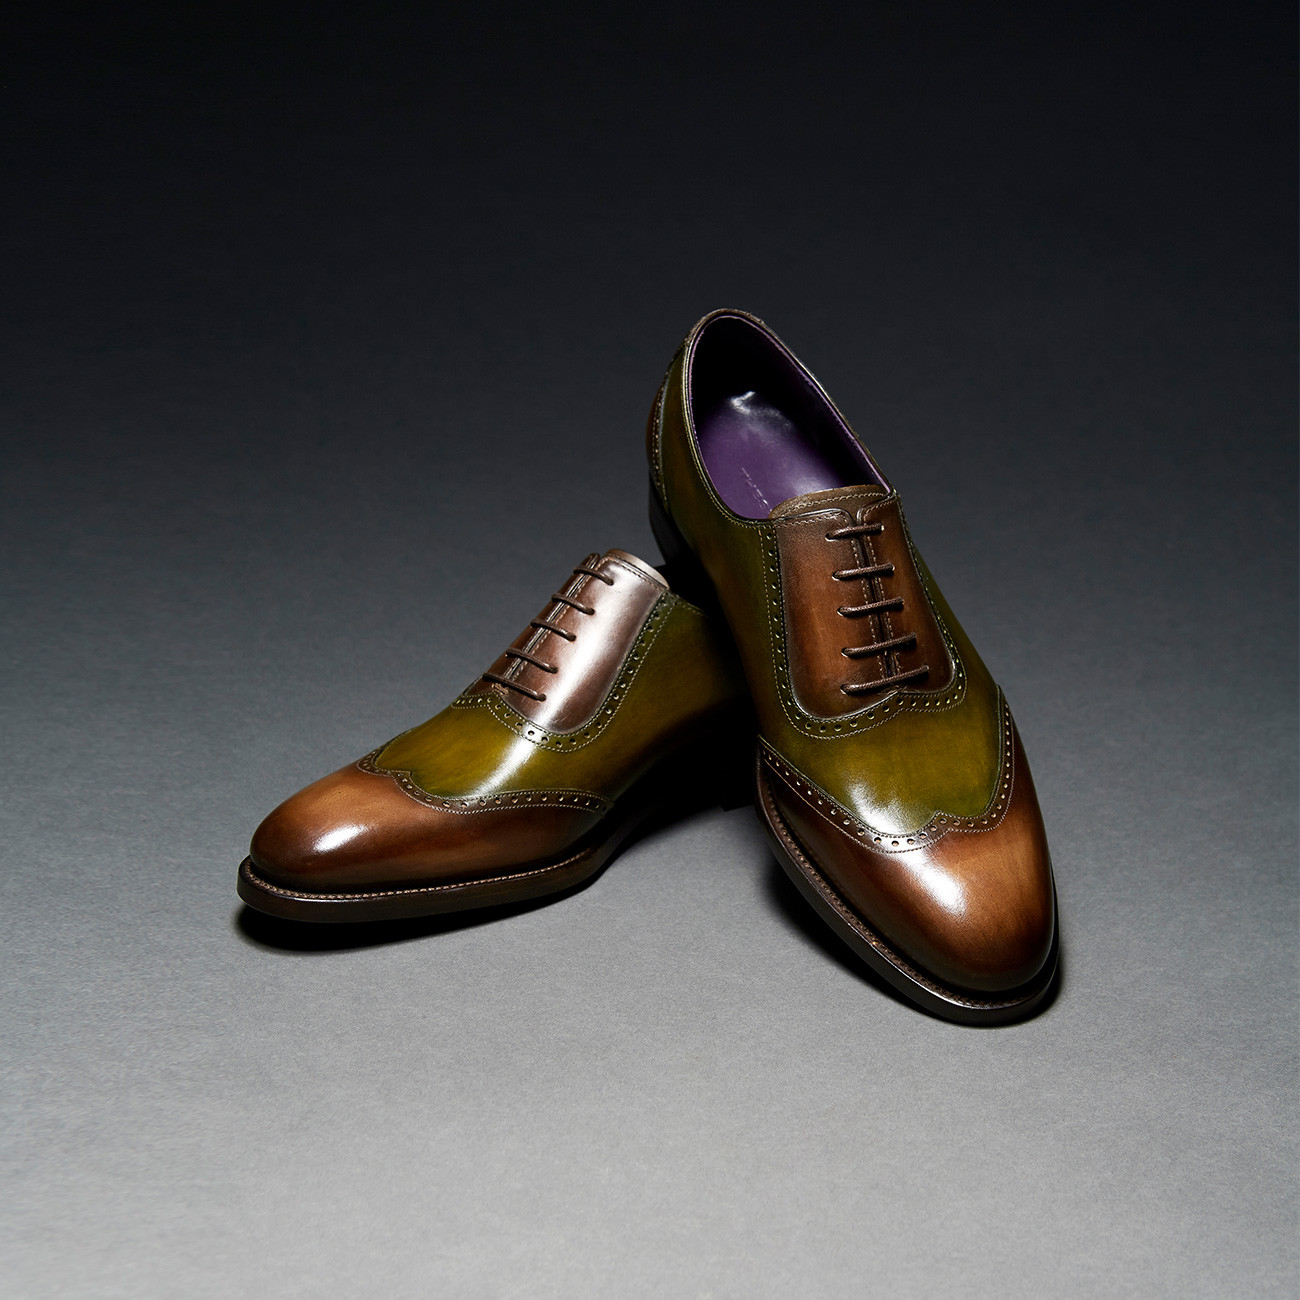 [Custommania X The shuri] PATINA WING TIP OXFORD OFR No.837